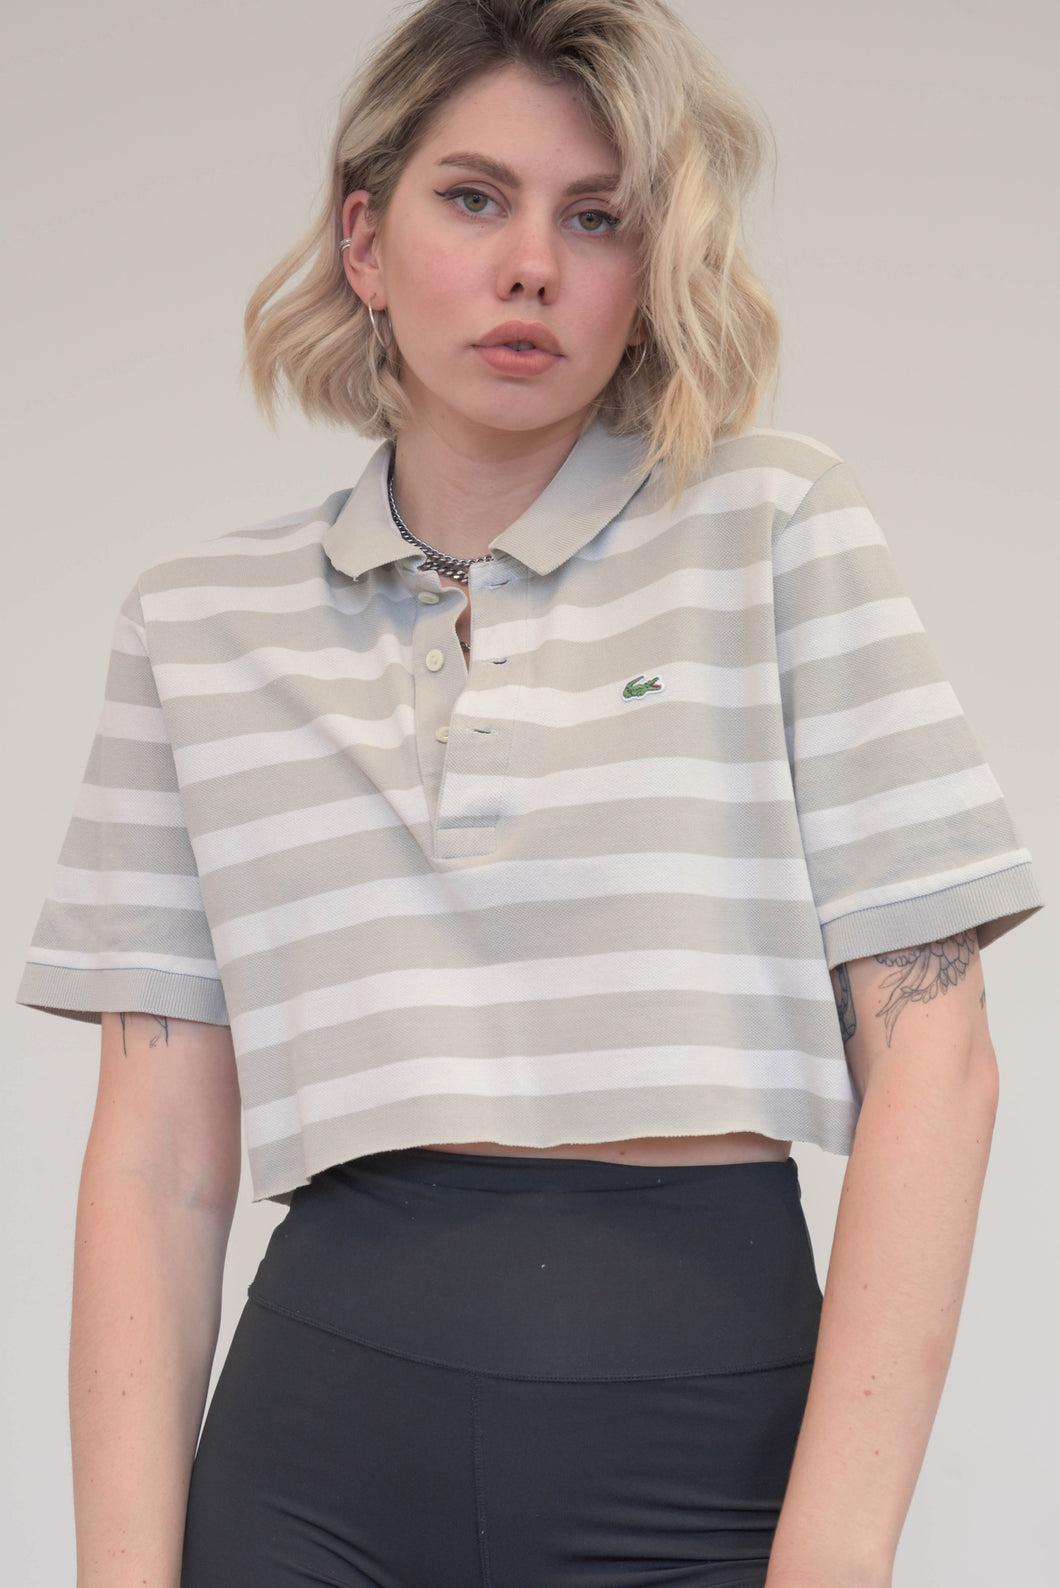 Vintage Reworked Lacoste Crop Top Polo Shirt in White Grey Striped in S